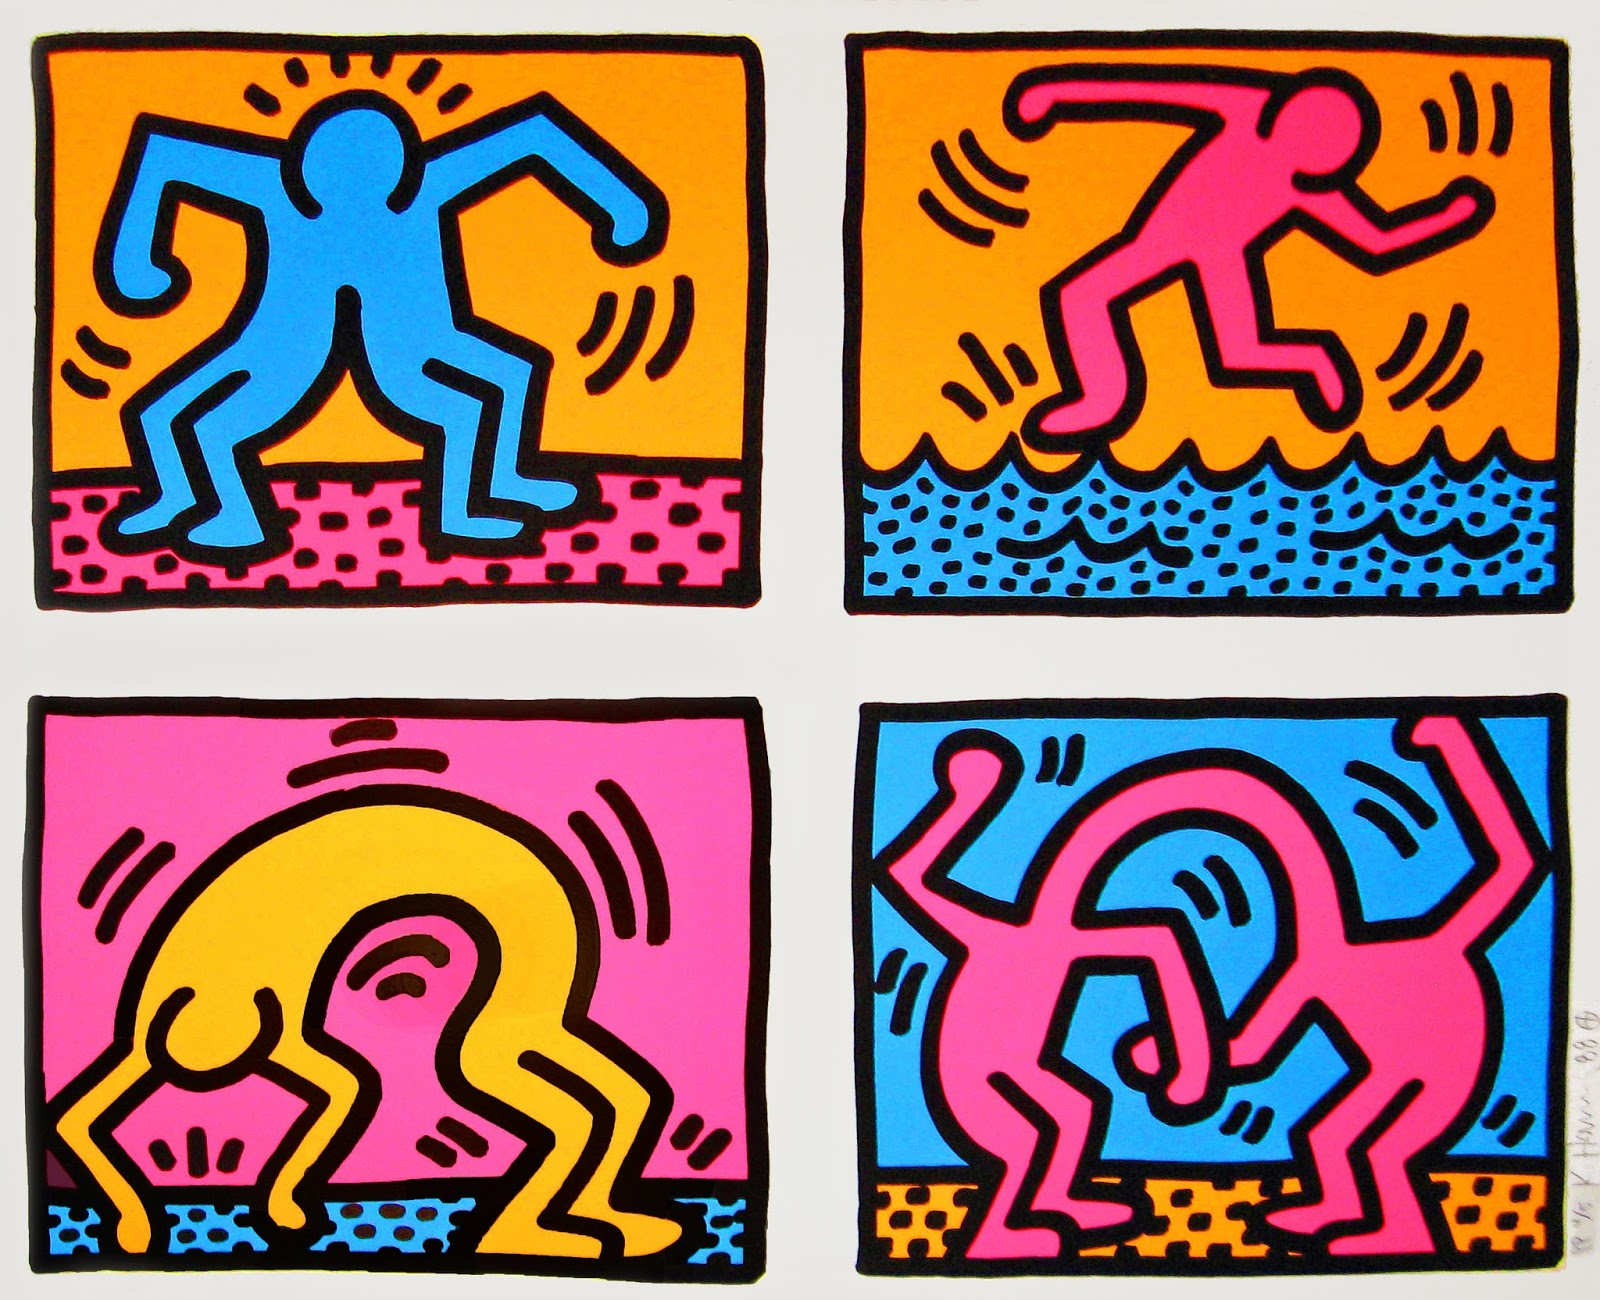 Keith haring famous graffiti artists graffiti artists names